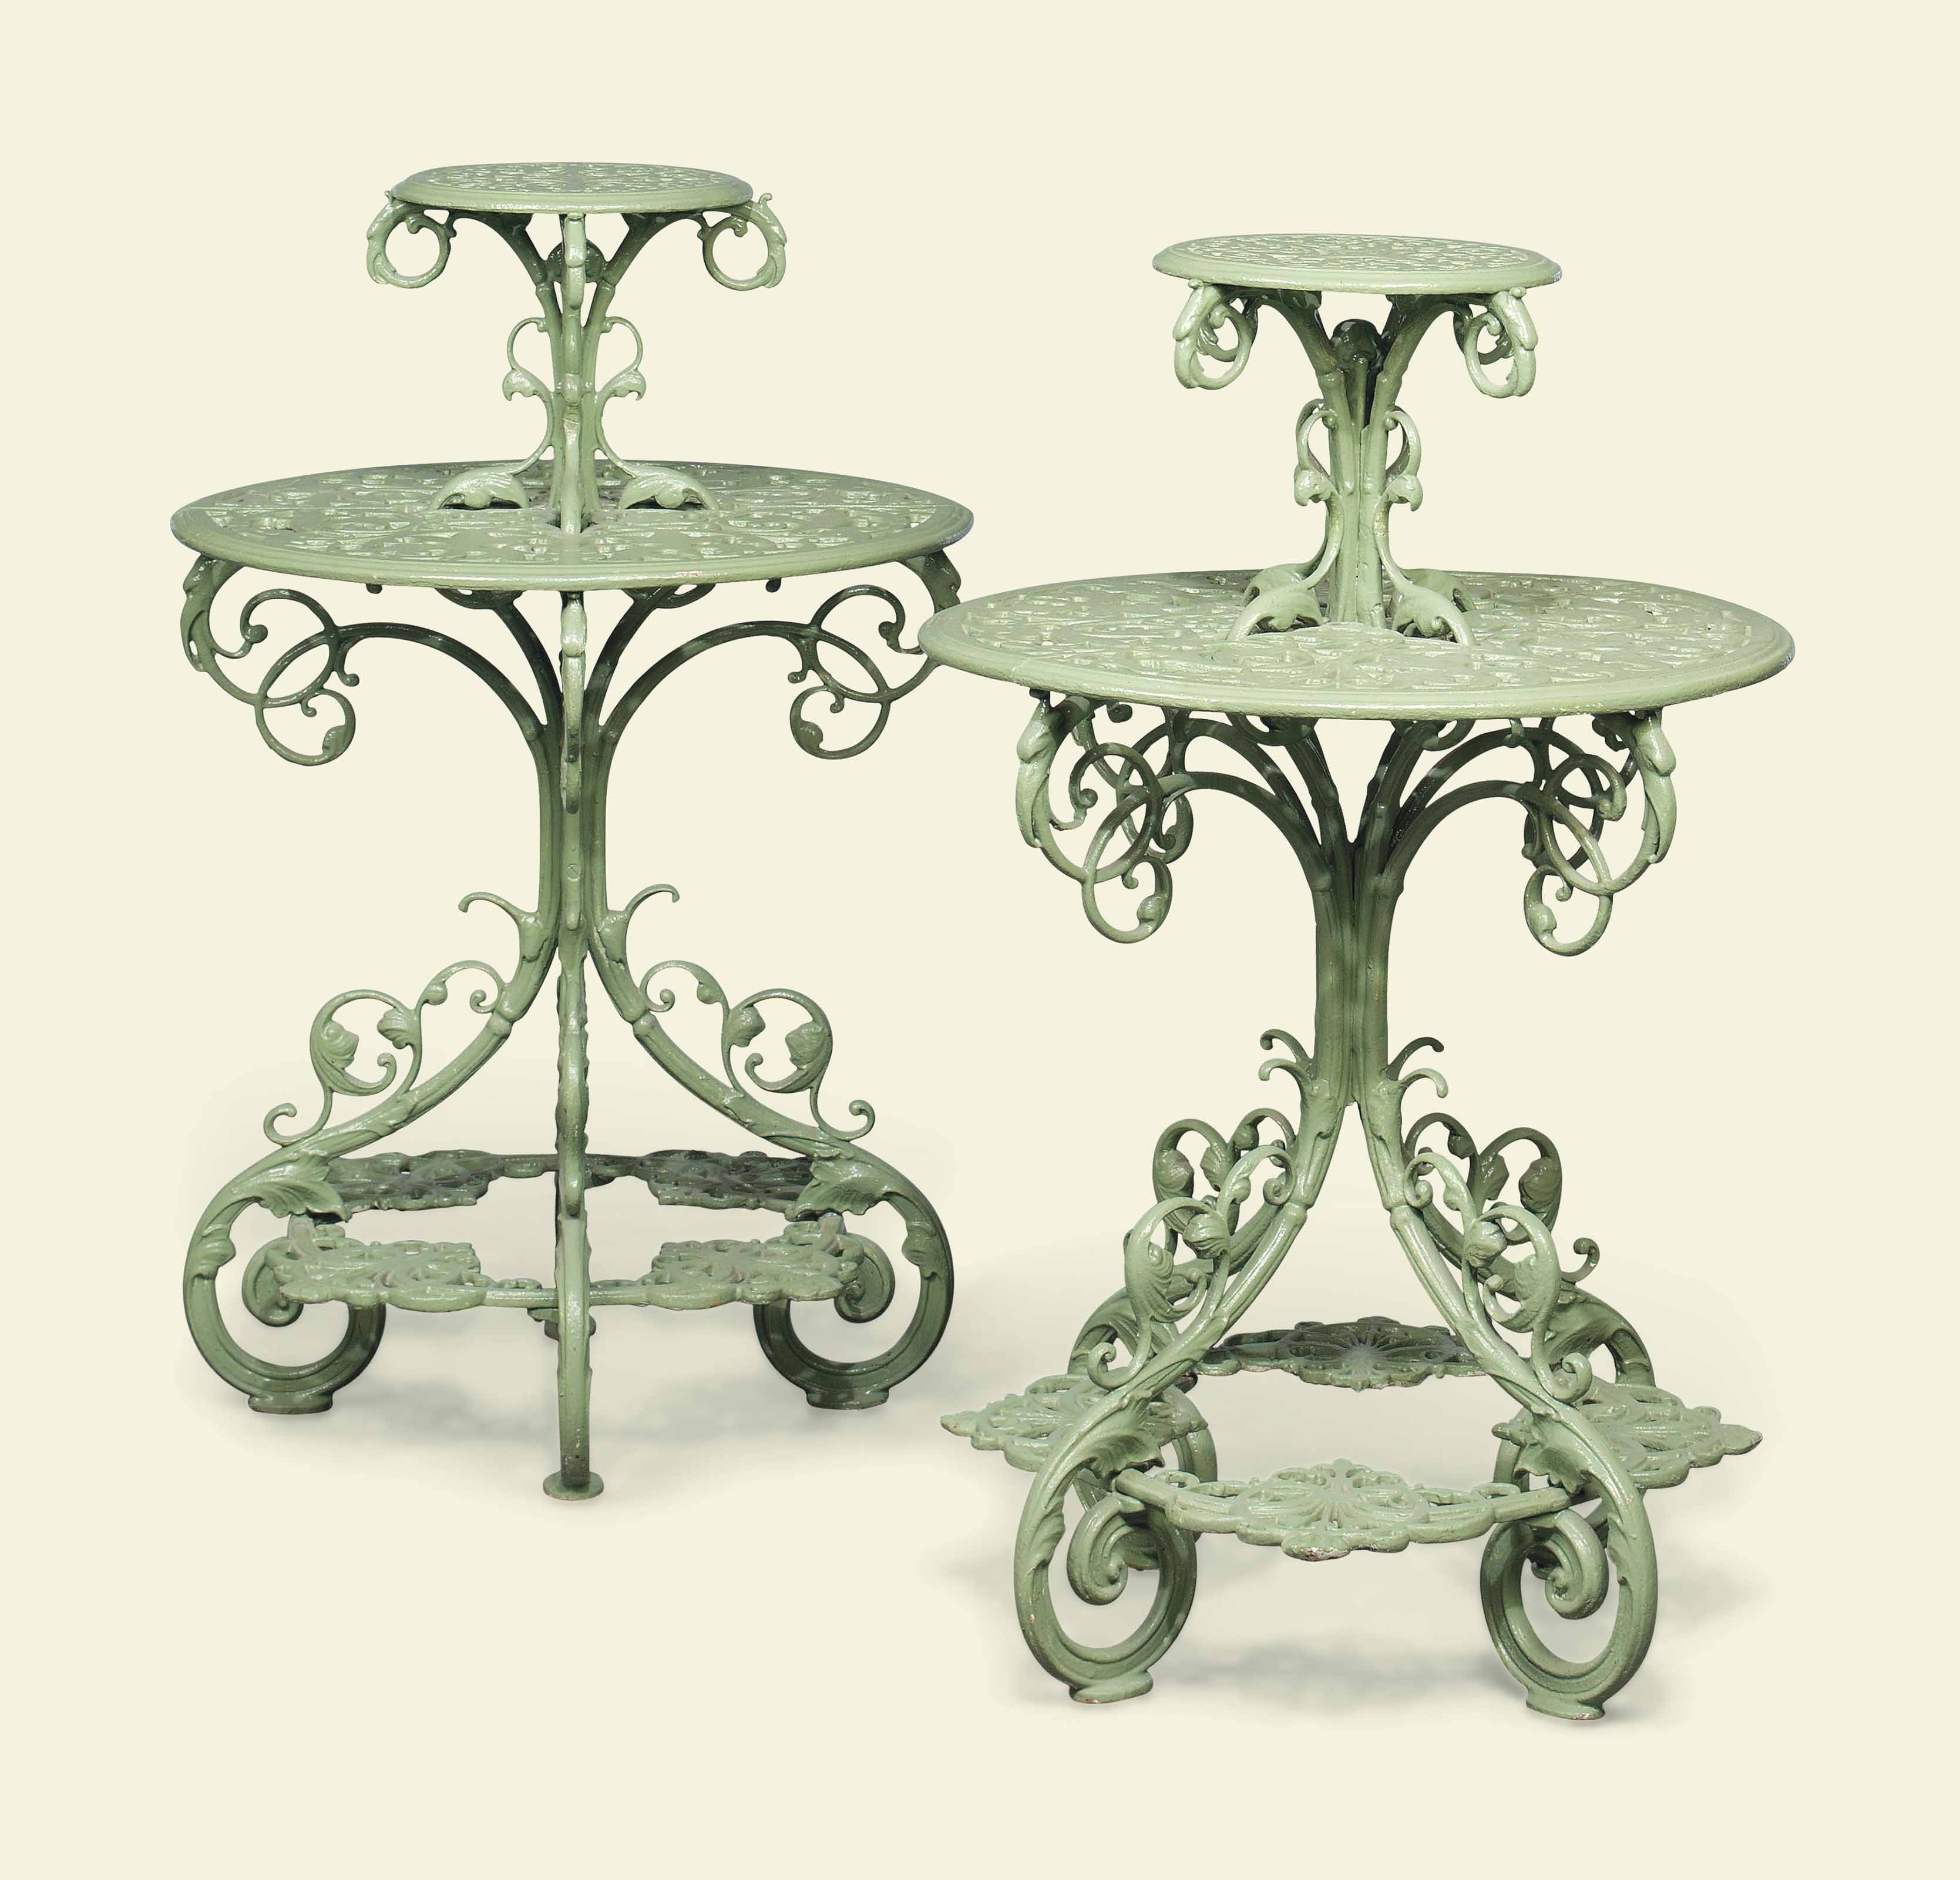 A PAIR OF VICTORIAN TWO-TIER PLANT STANDS